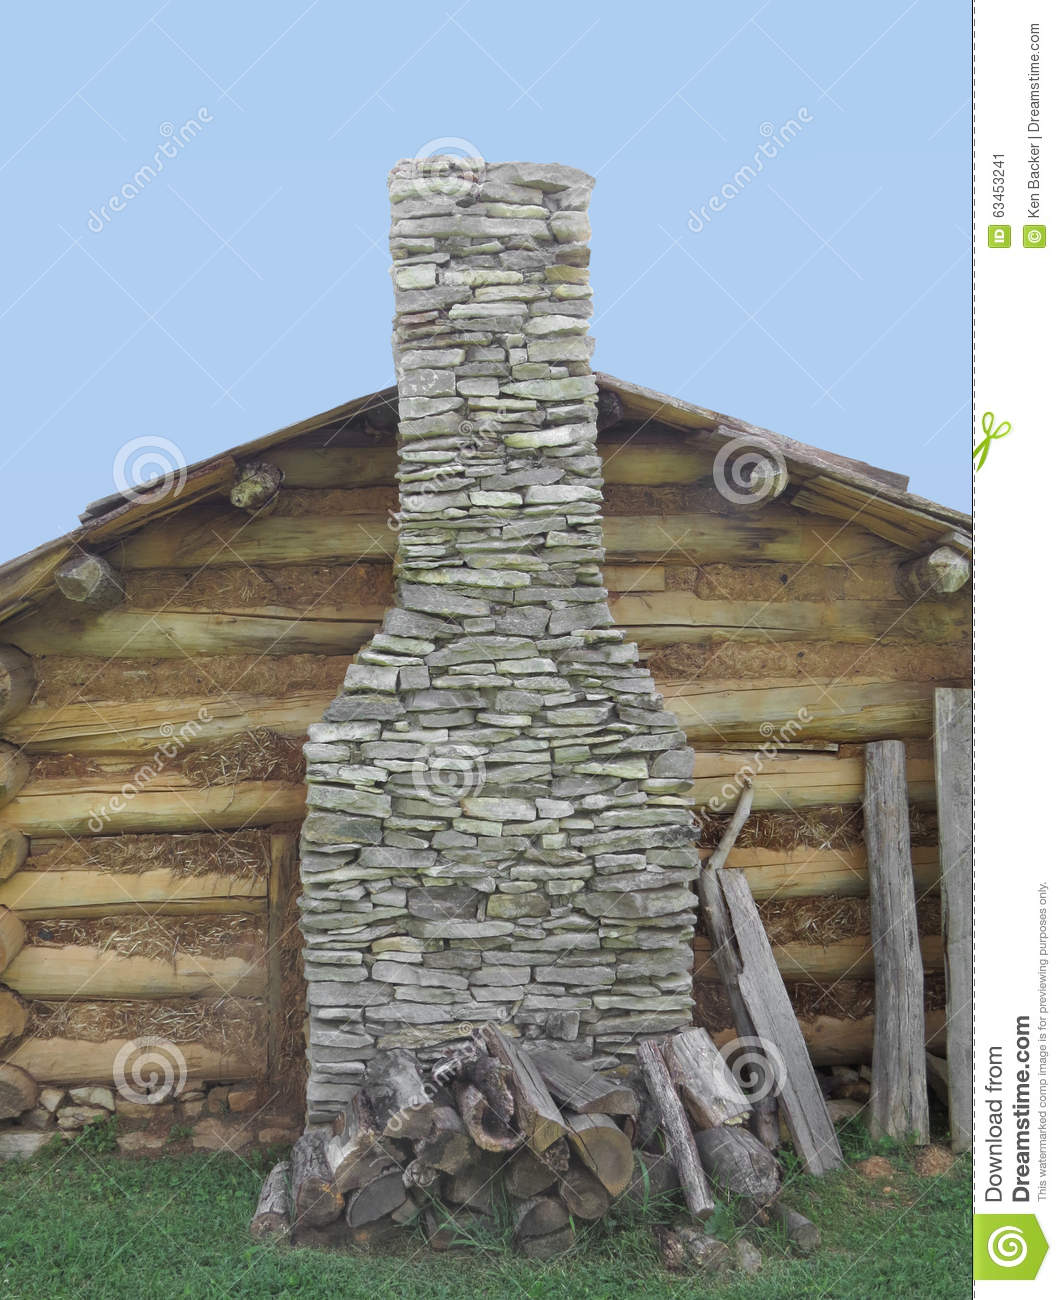 Stone chimney on wall of log cabin stock photo image for Stone chimneys